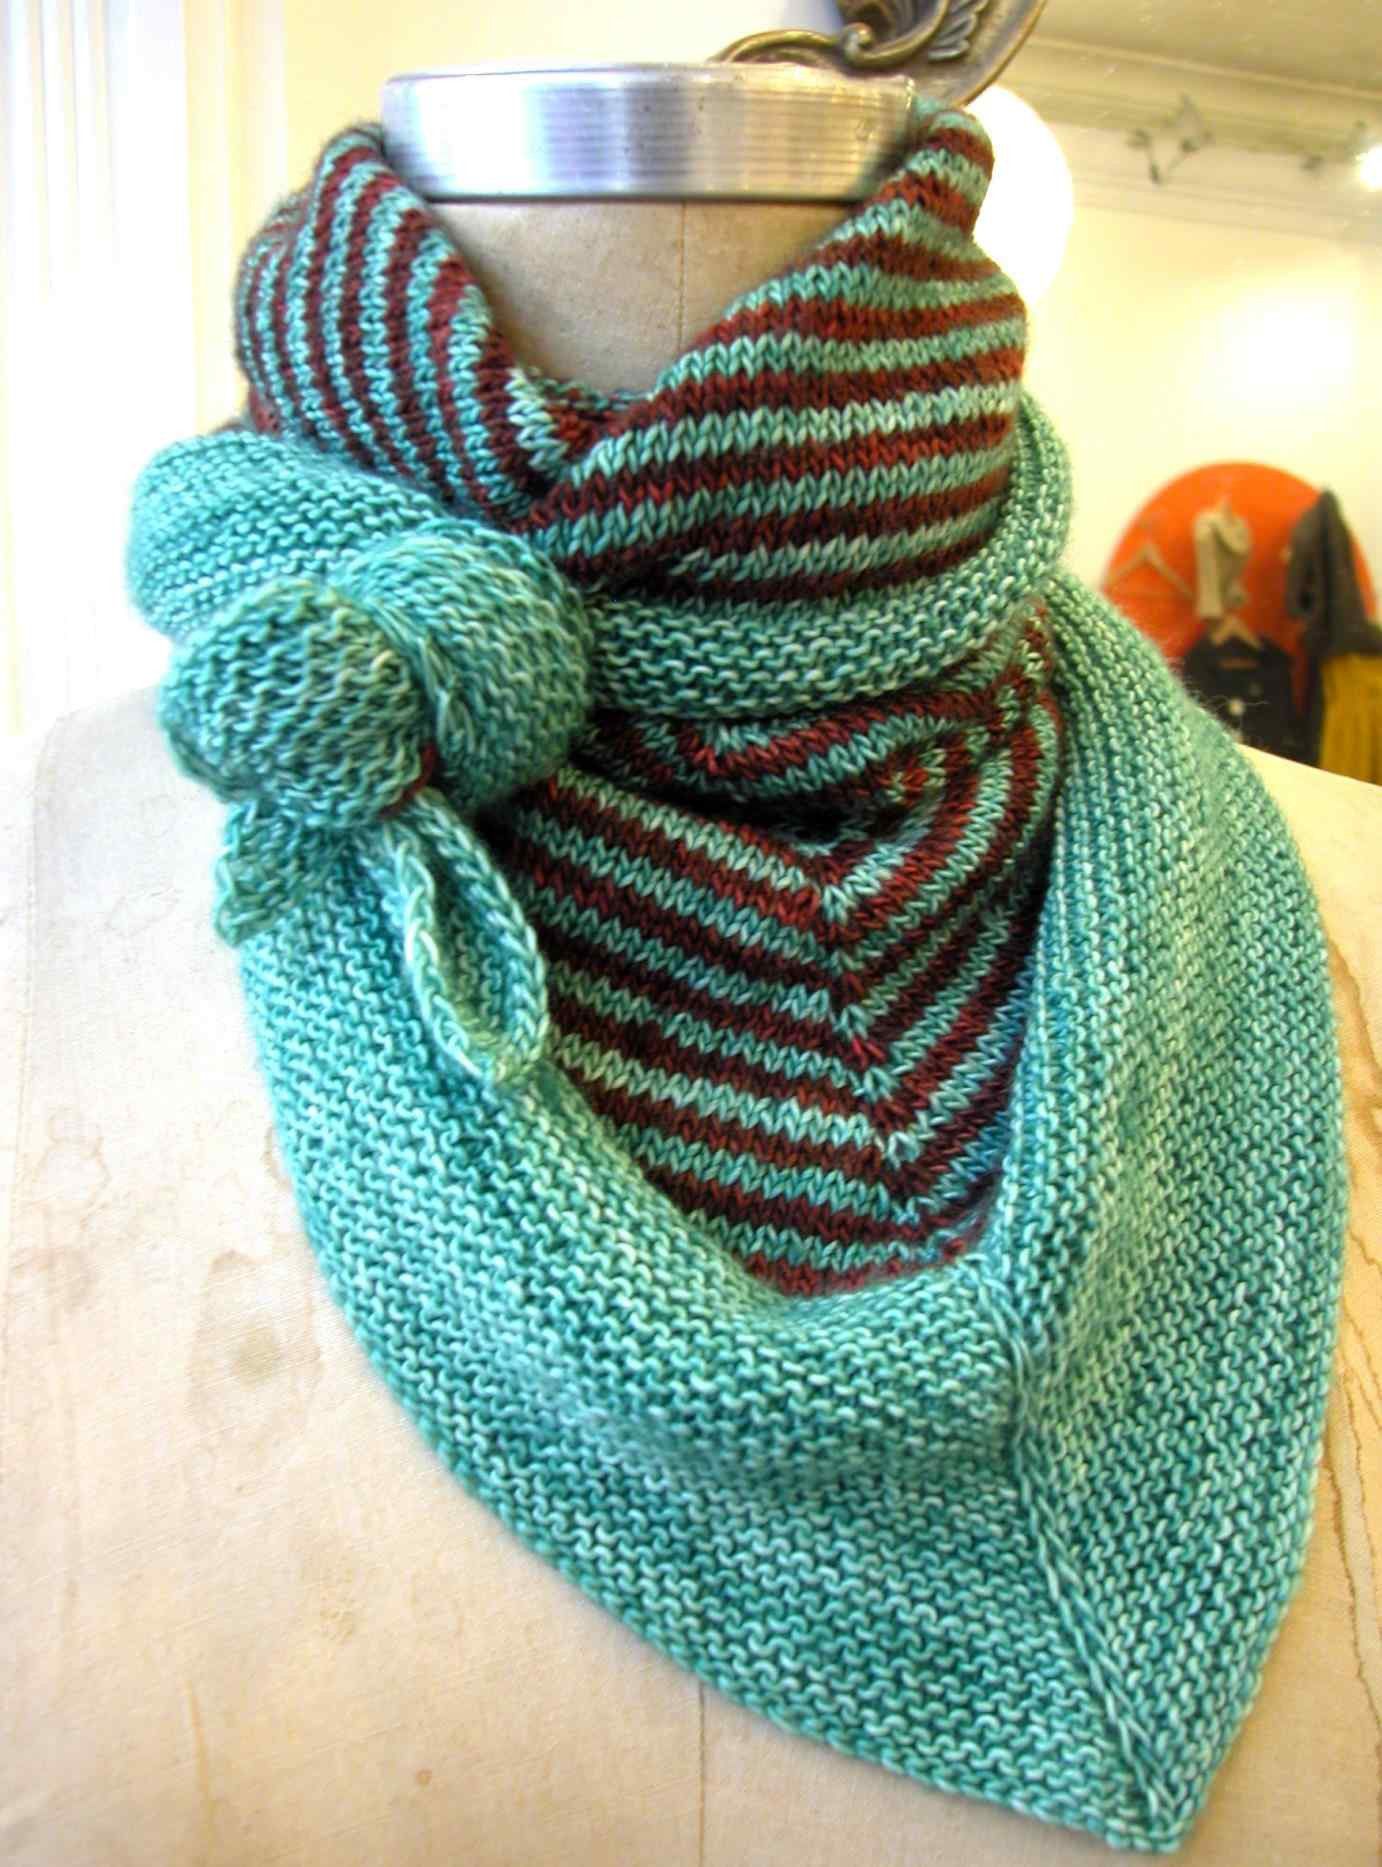 Easy Knitting Patterns Unique 7 Triangle Scarf Knitting Patterns the Funky Stitch Of Superb 44 Ideas Easy Knitting Patterns